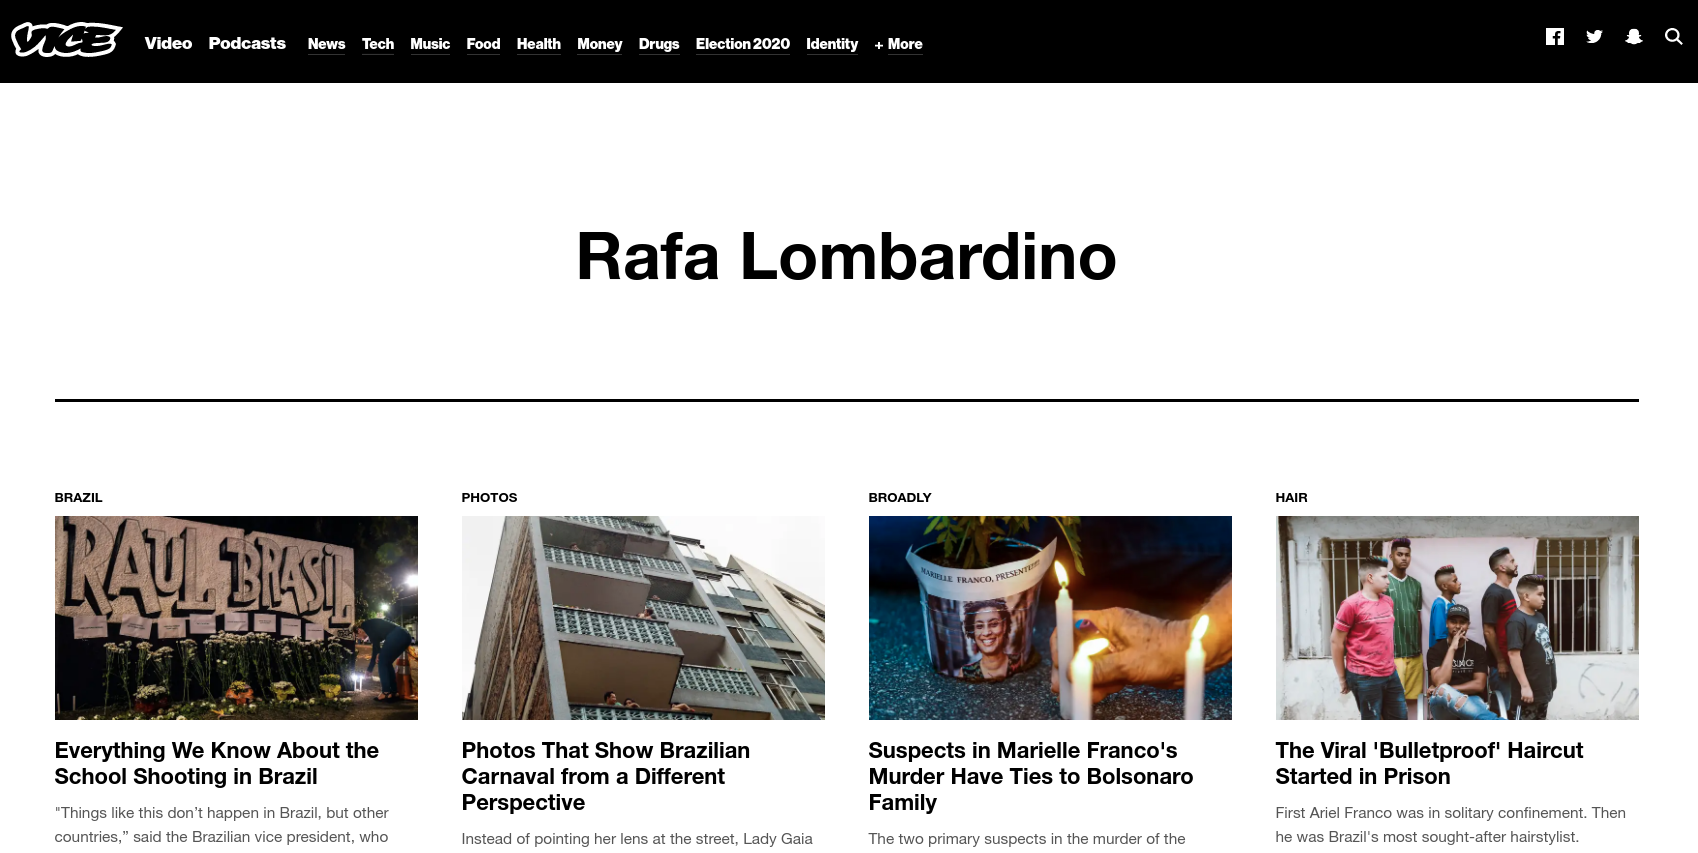 Portuguese-to-English  articles translated for Vice Media. Check out the list here:   https://www.vice.com/en_us/contributor/rafa-lombardino